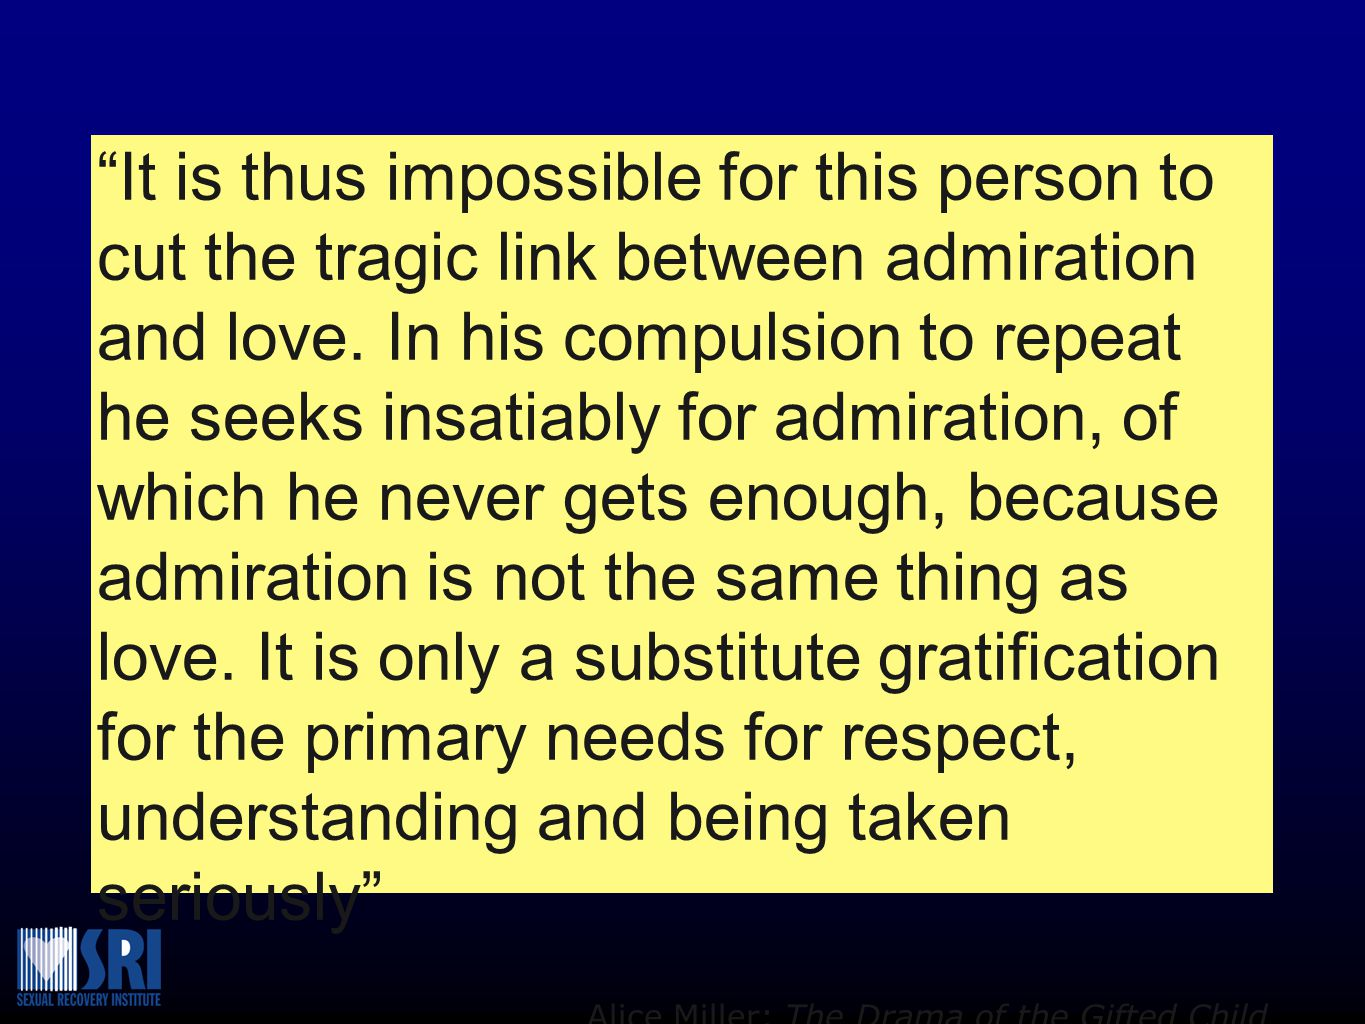 It is thus impossible for this person to cut the tragic link between admiration and love. In his compulsion to repeat he seeks insatiably for admiration, of which he never gets enough, because admiration is not the same thing as love. It is only a substitute gratification for the primary needs for respect, understanding and being taken seriously